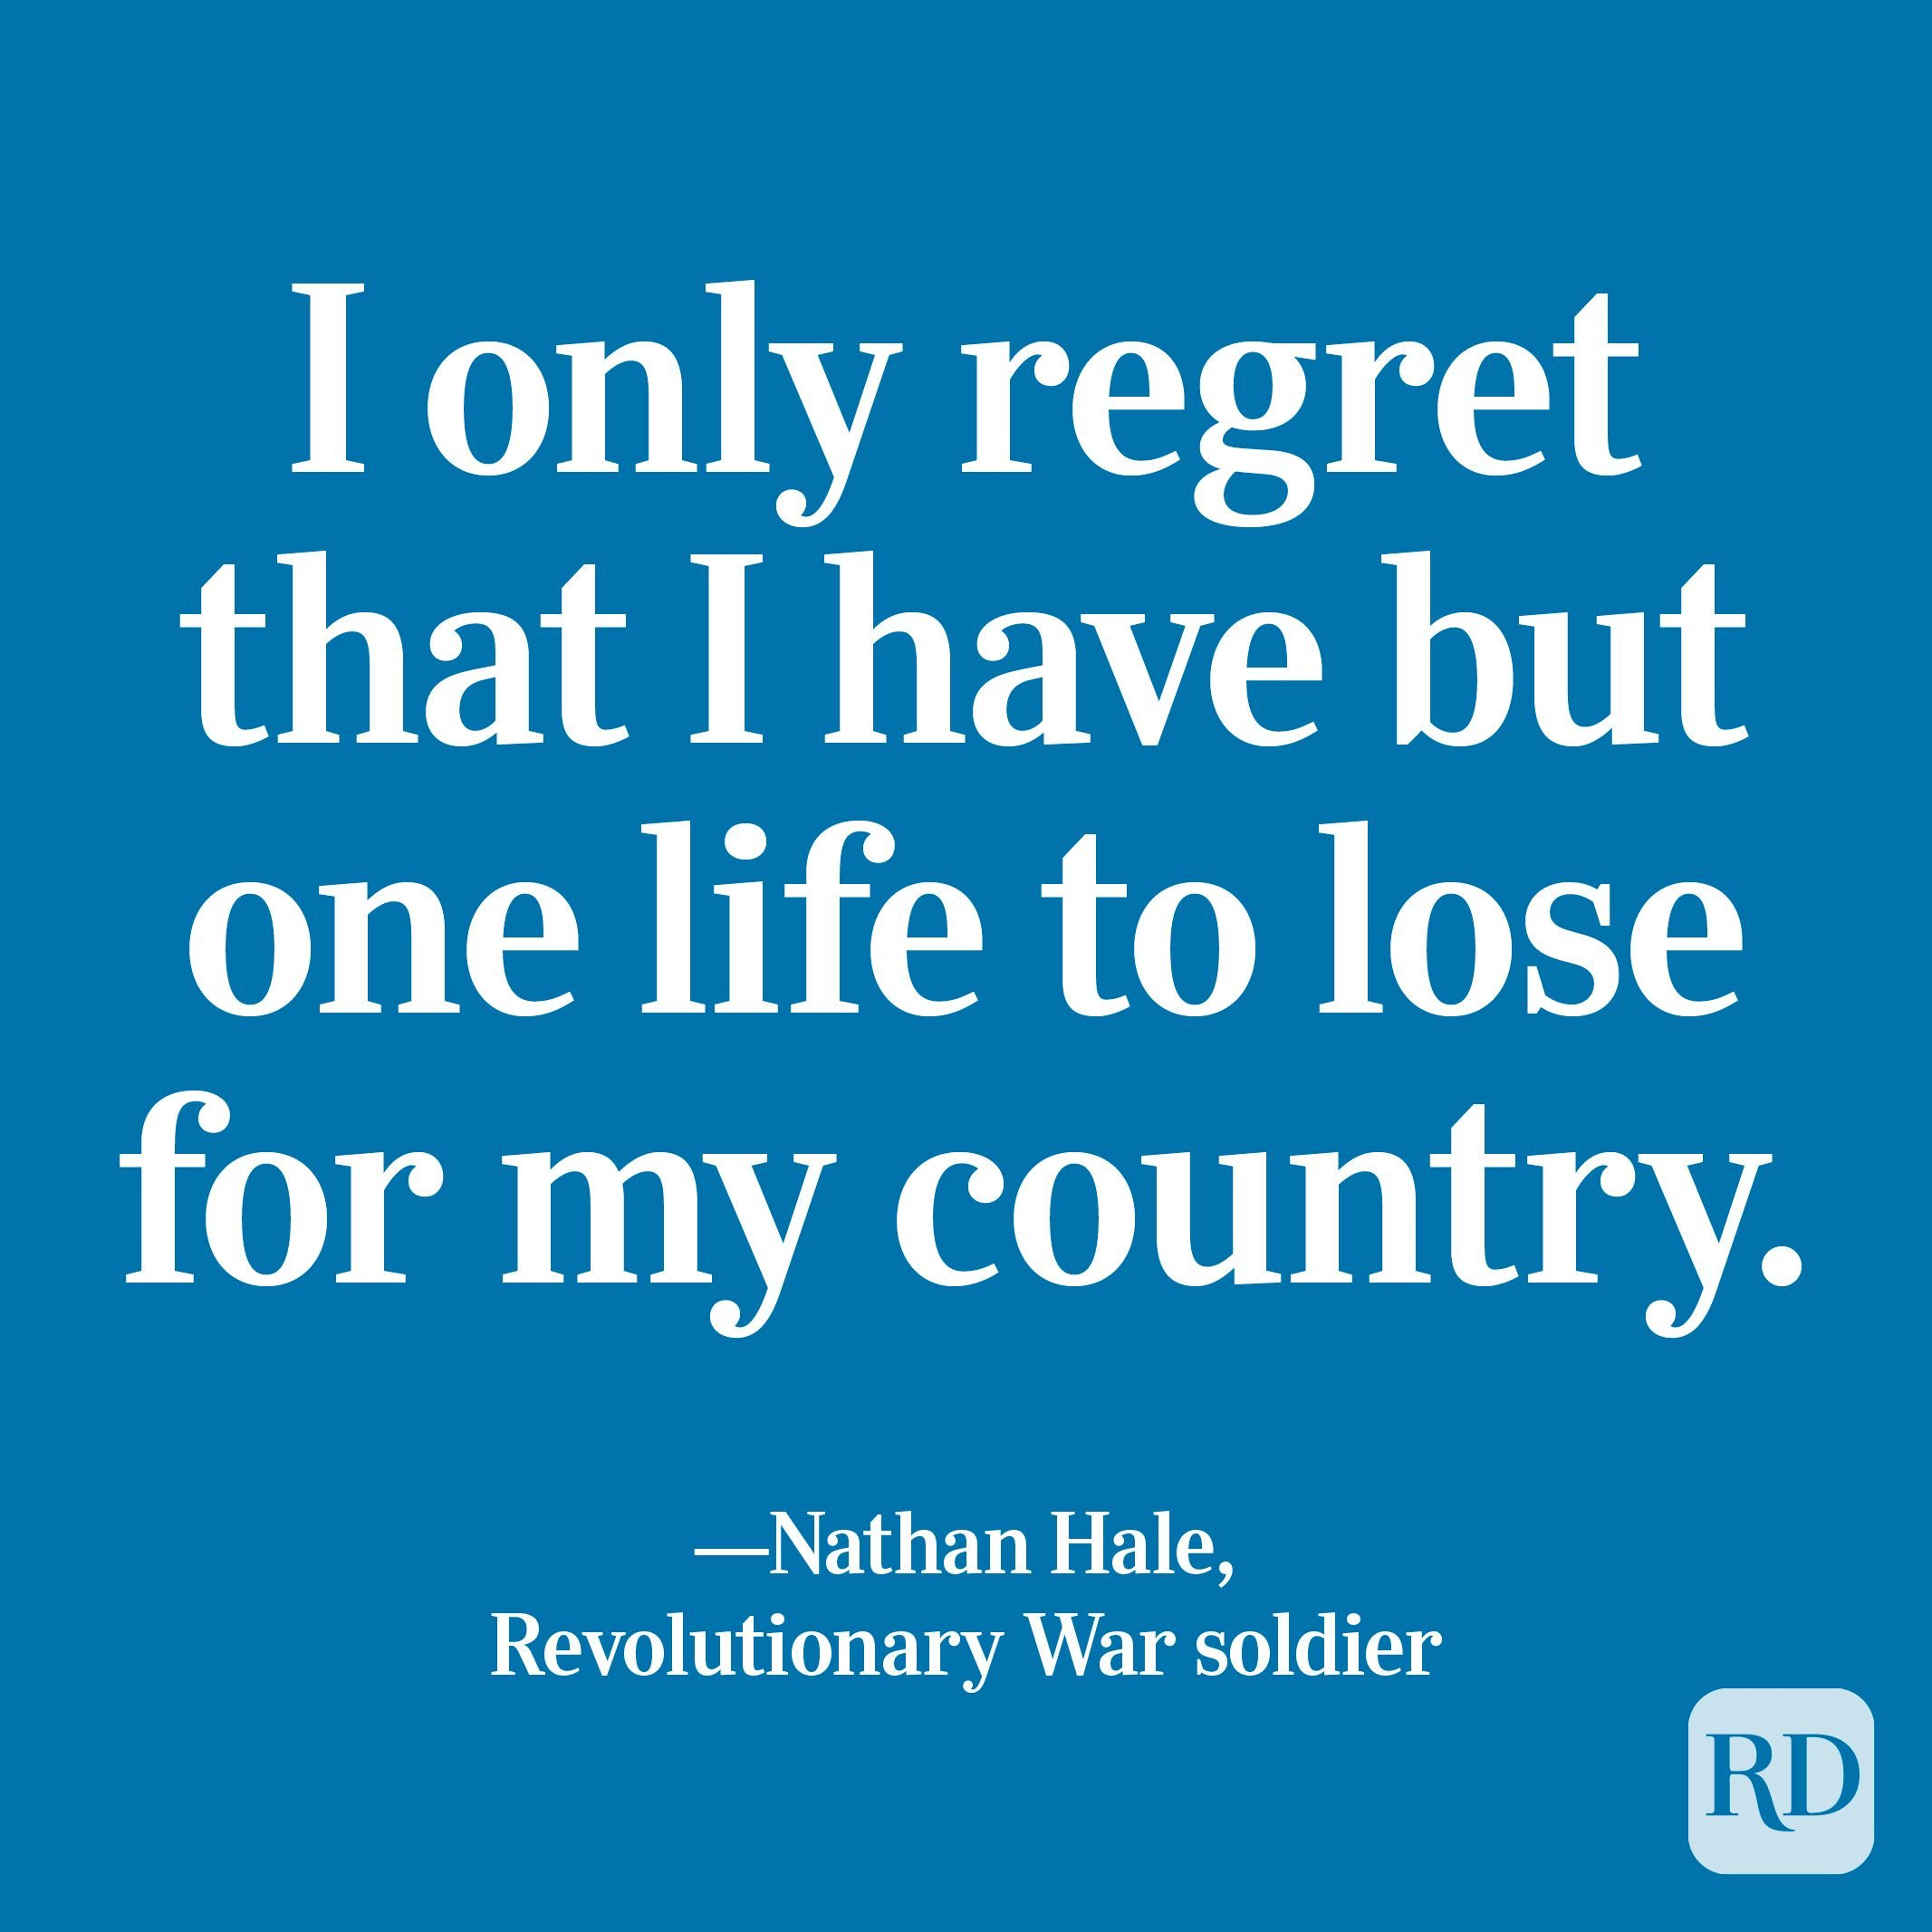 """""""I only regret that I have but one life to lose for my country."""" —Nathan Hale, Revolutionary War soldier"""